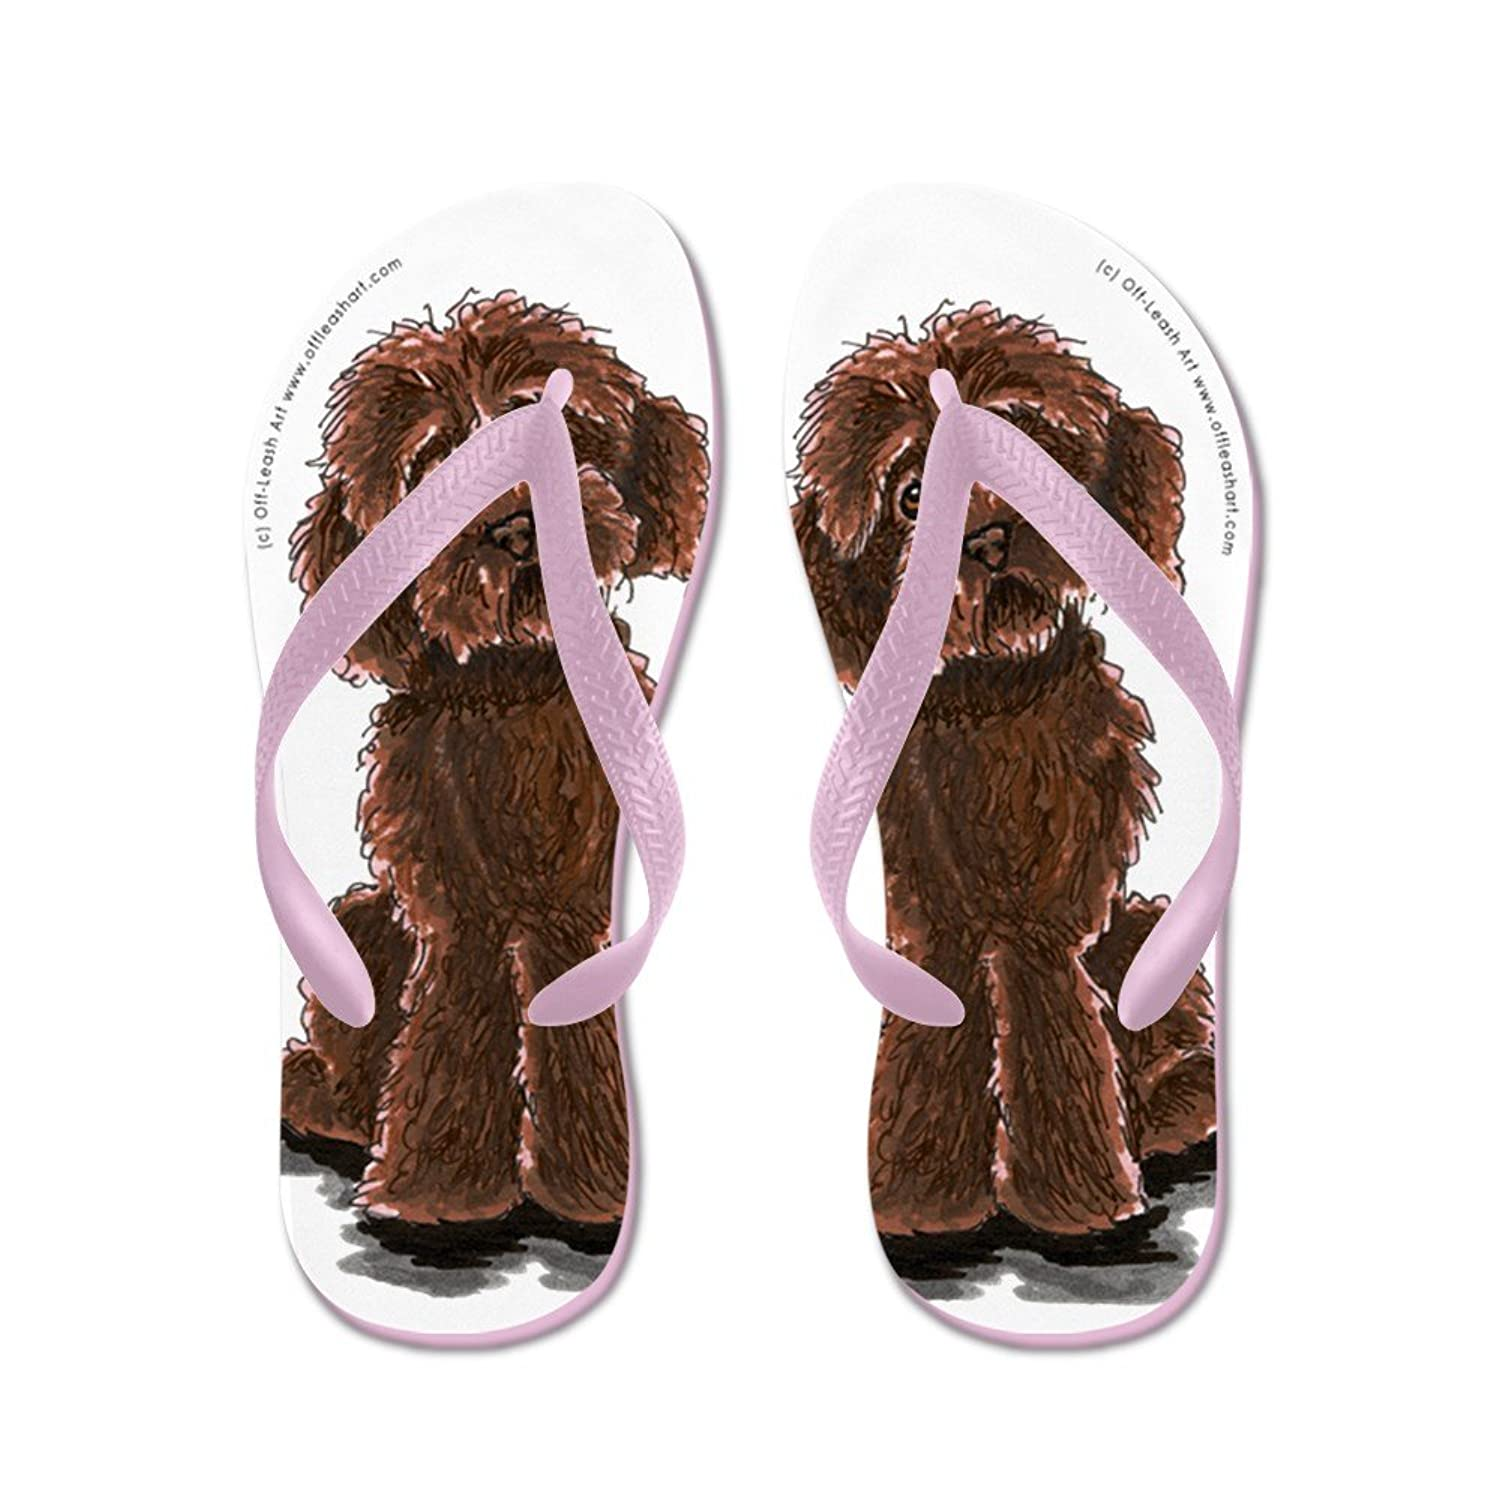 CafePress - Labradoodle Give Me Chocolate - Flip Flops, Funny Thong Sandals, Beach Sandals